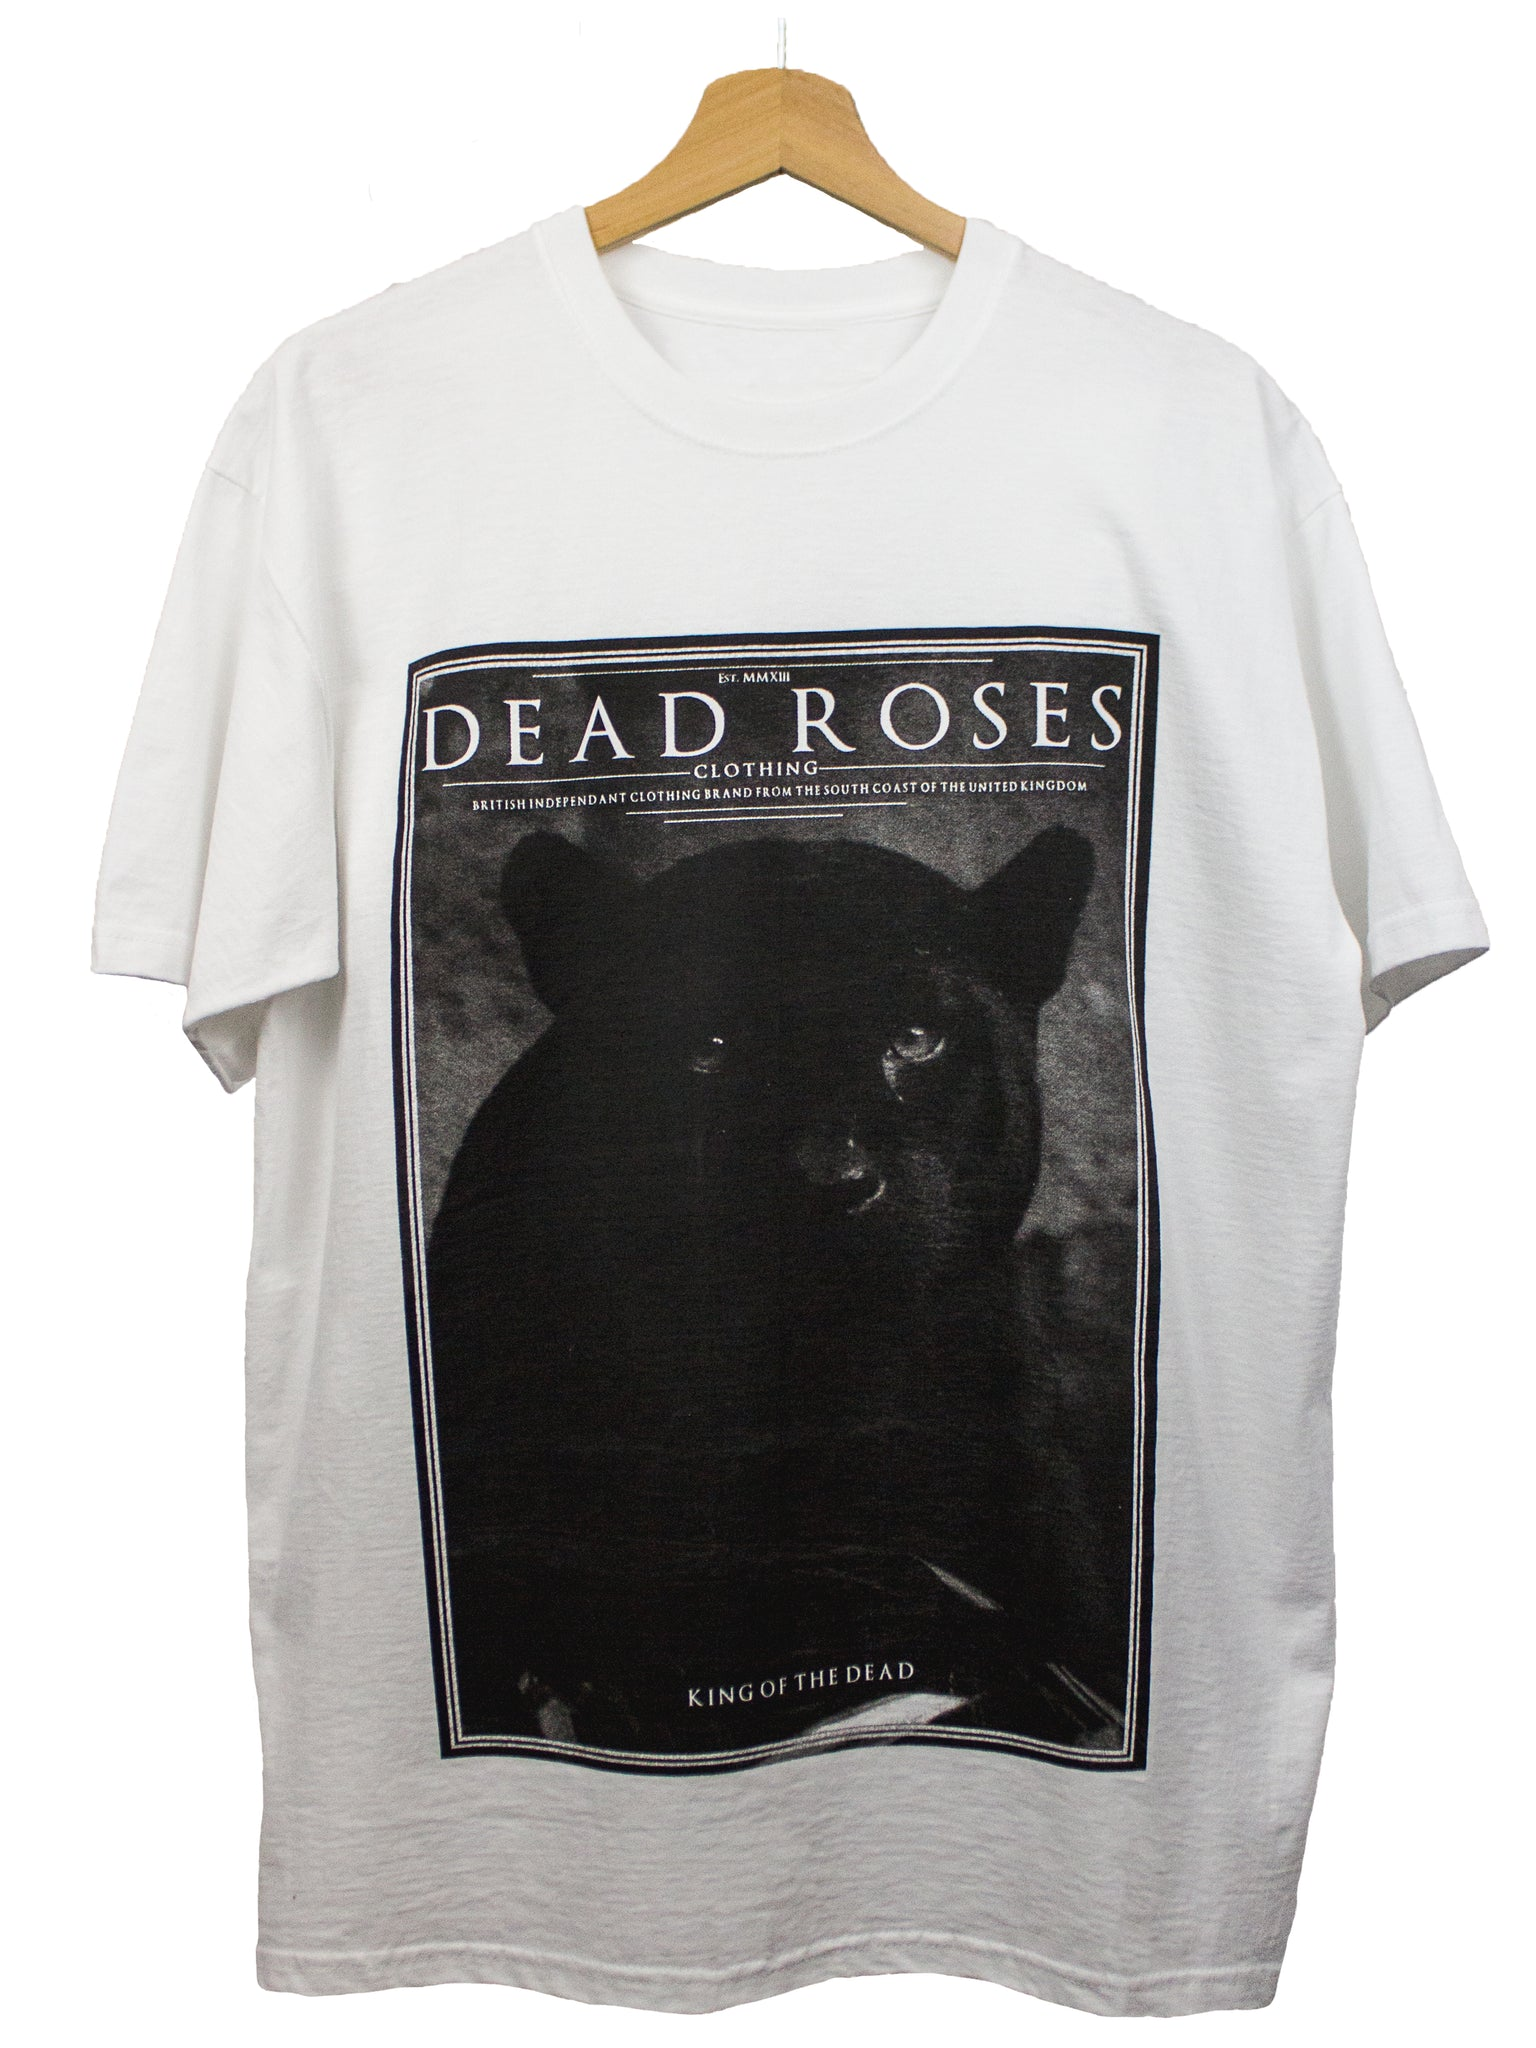 King of the Dead T-Shirt